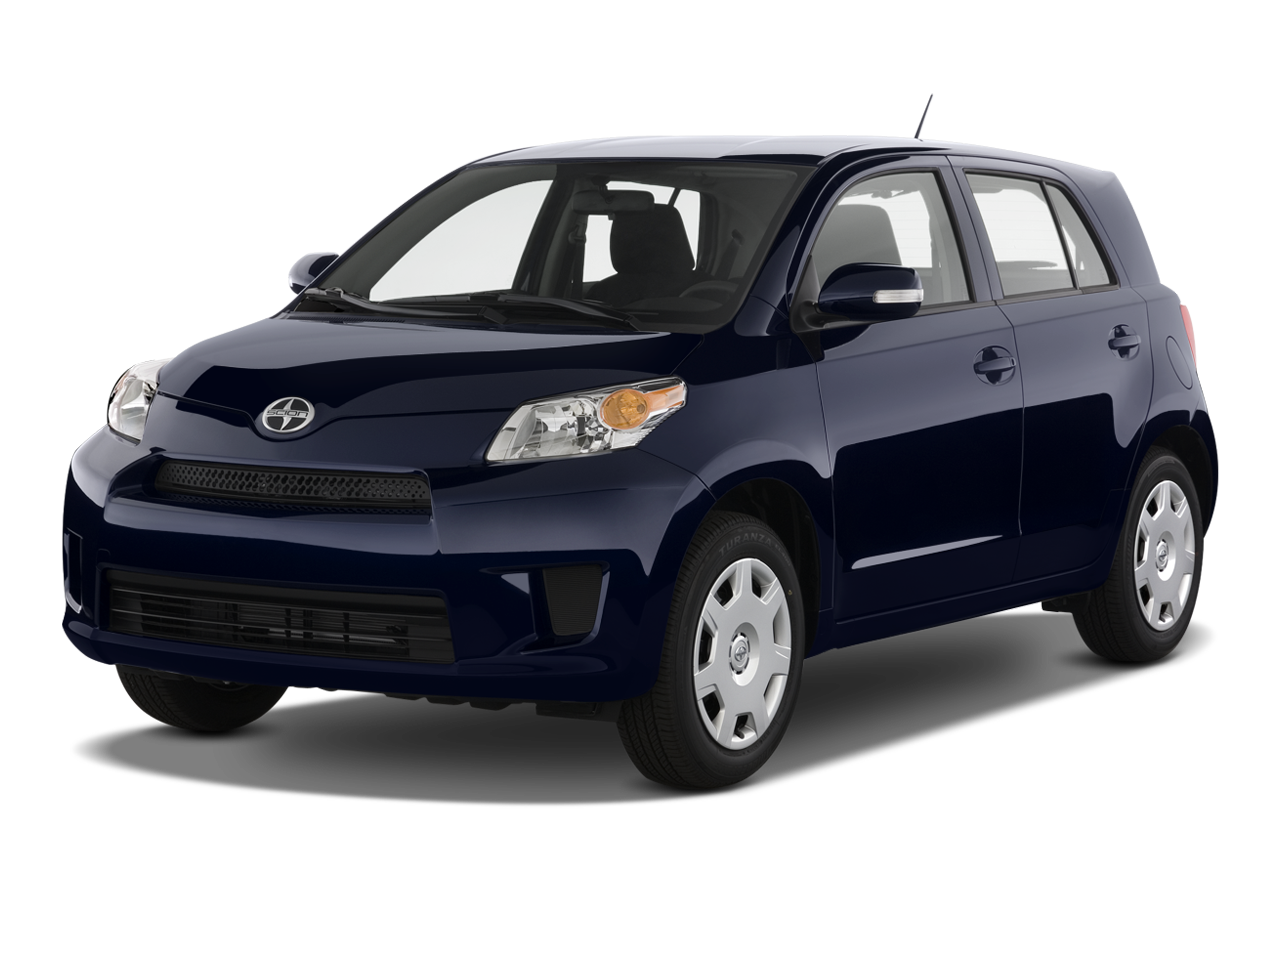 2012 Scion Xd Release Series 4 0 And Xb Release Series 9 0 Priced